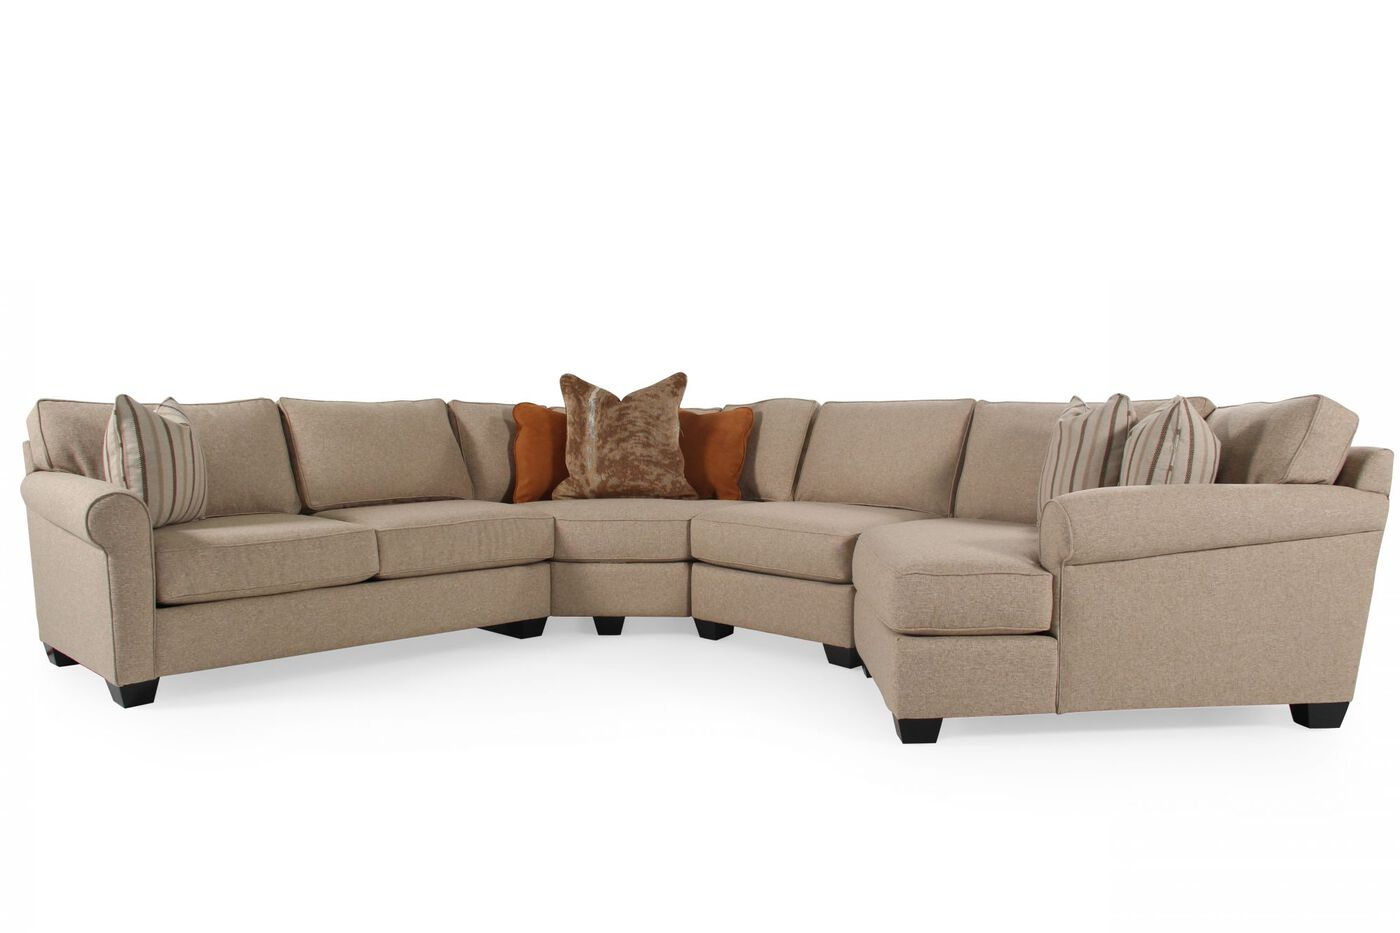 Four piece contemporary sectional in sand mathis for 4 living furniture